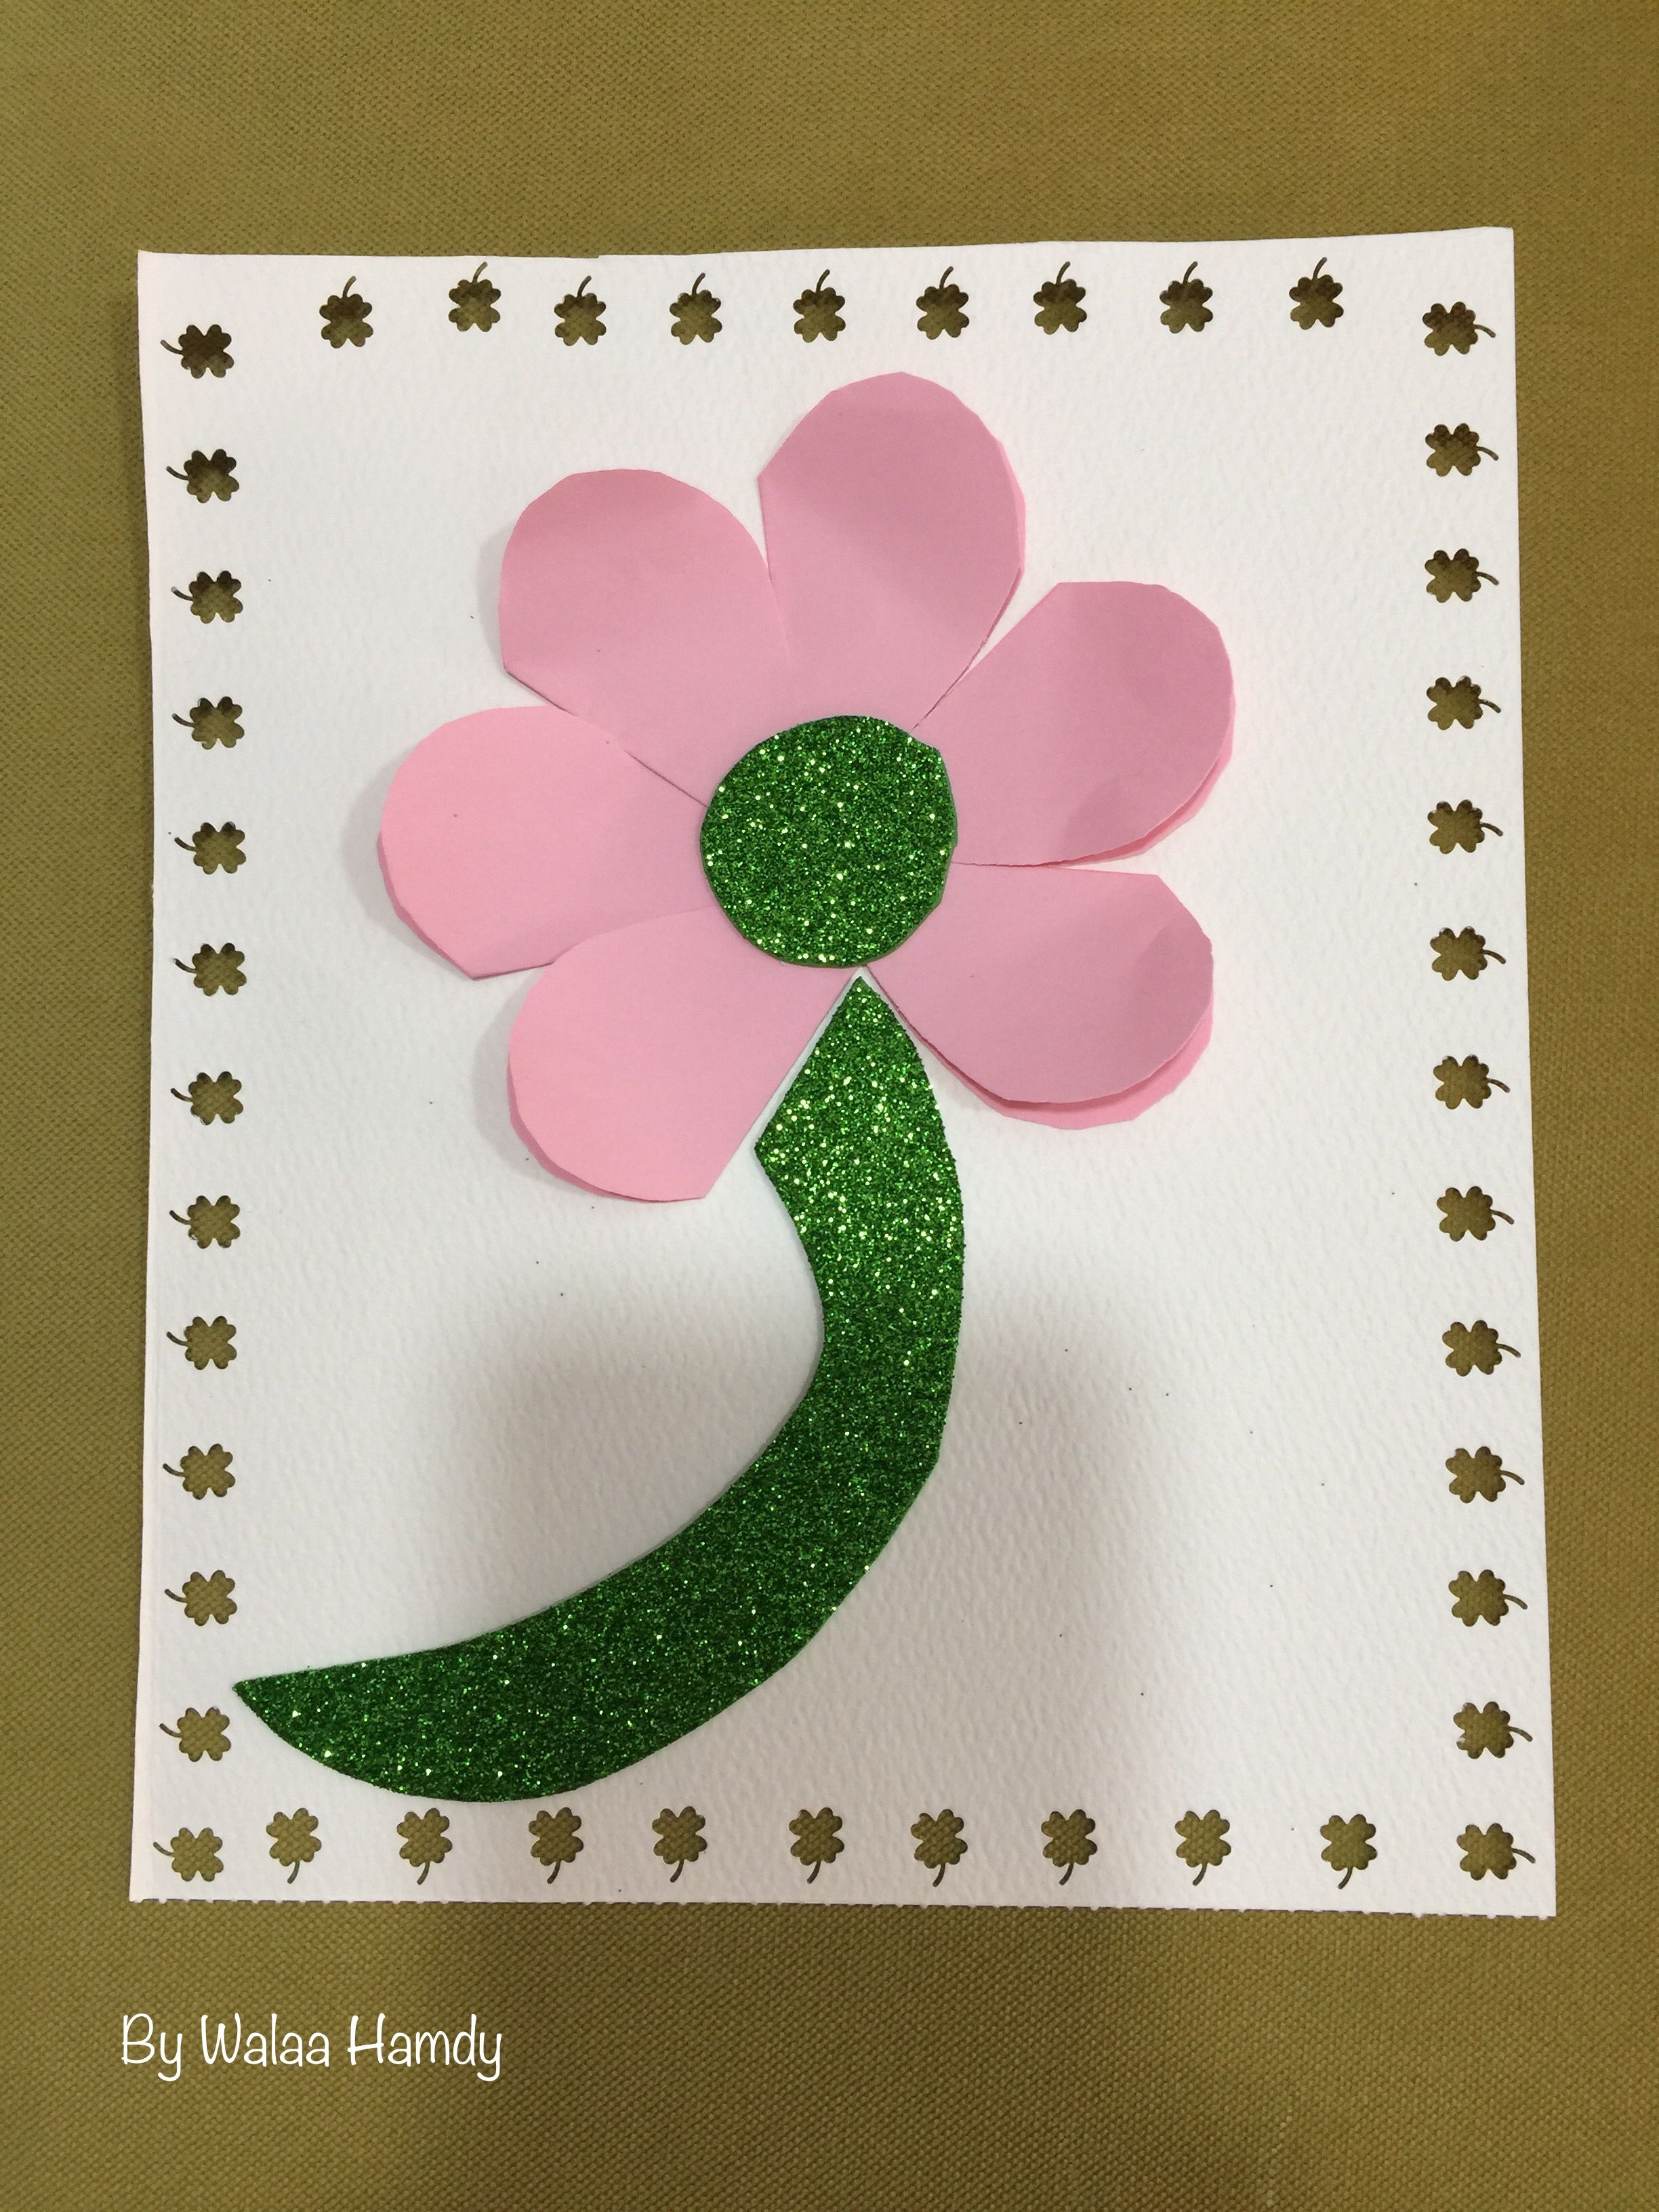 نشاط حرف الزين ز زهرة Alphabet Crafts Arabic Alphabet Letter A Crafts